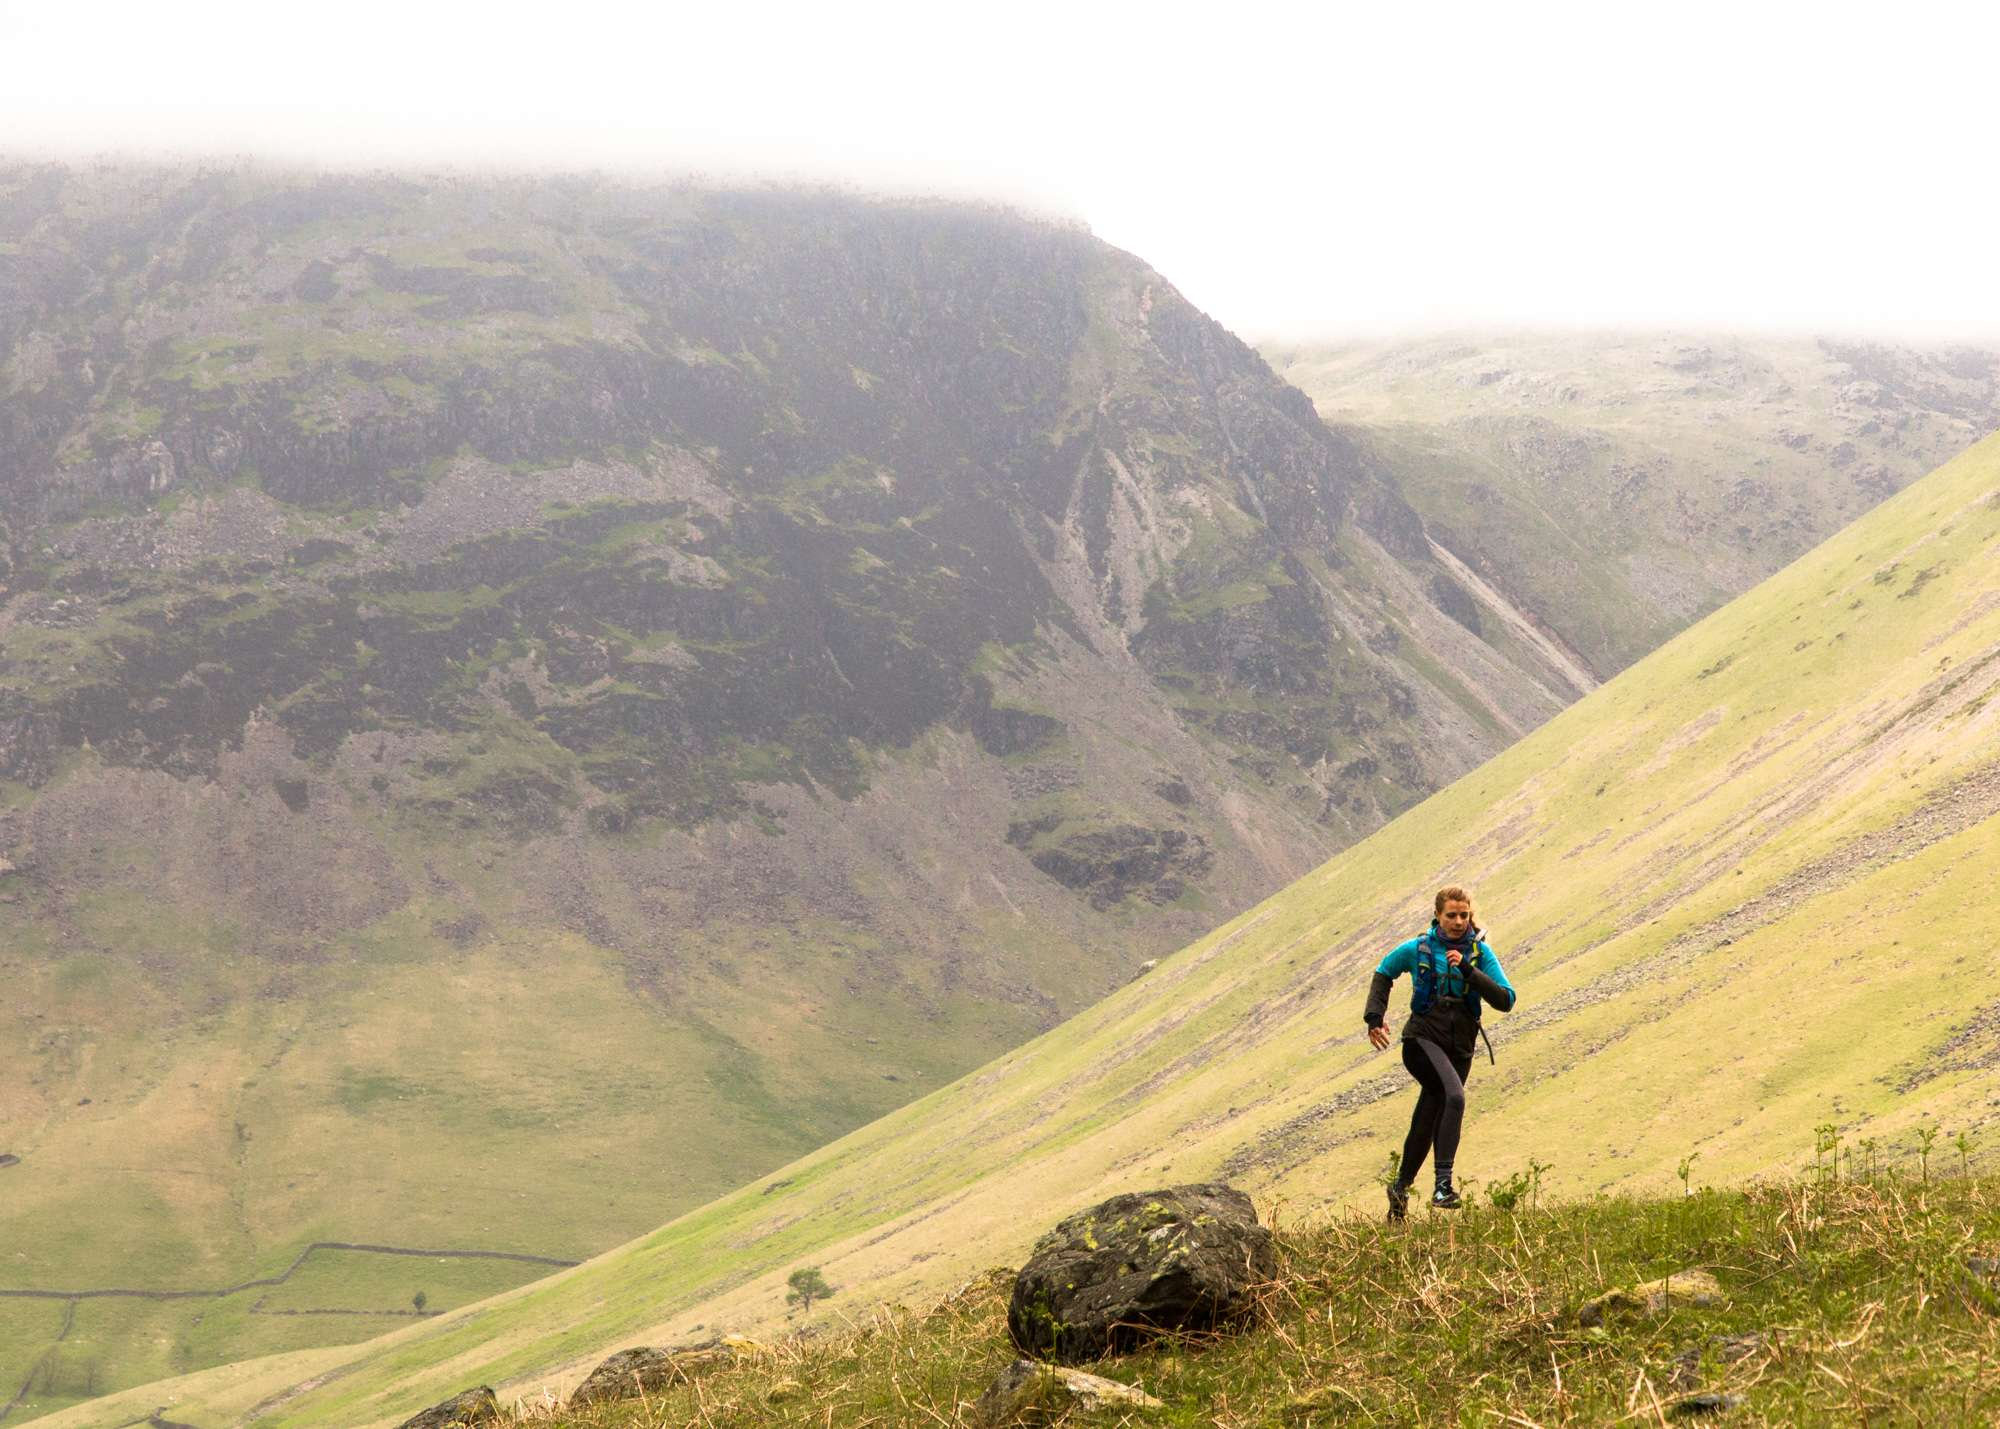 inov-8 blog world's best trails. England. Mike Hopkins